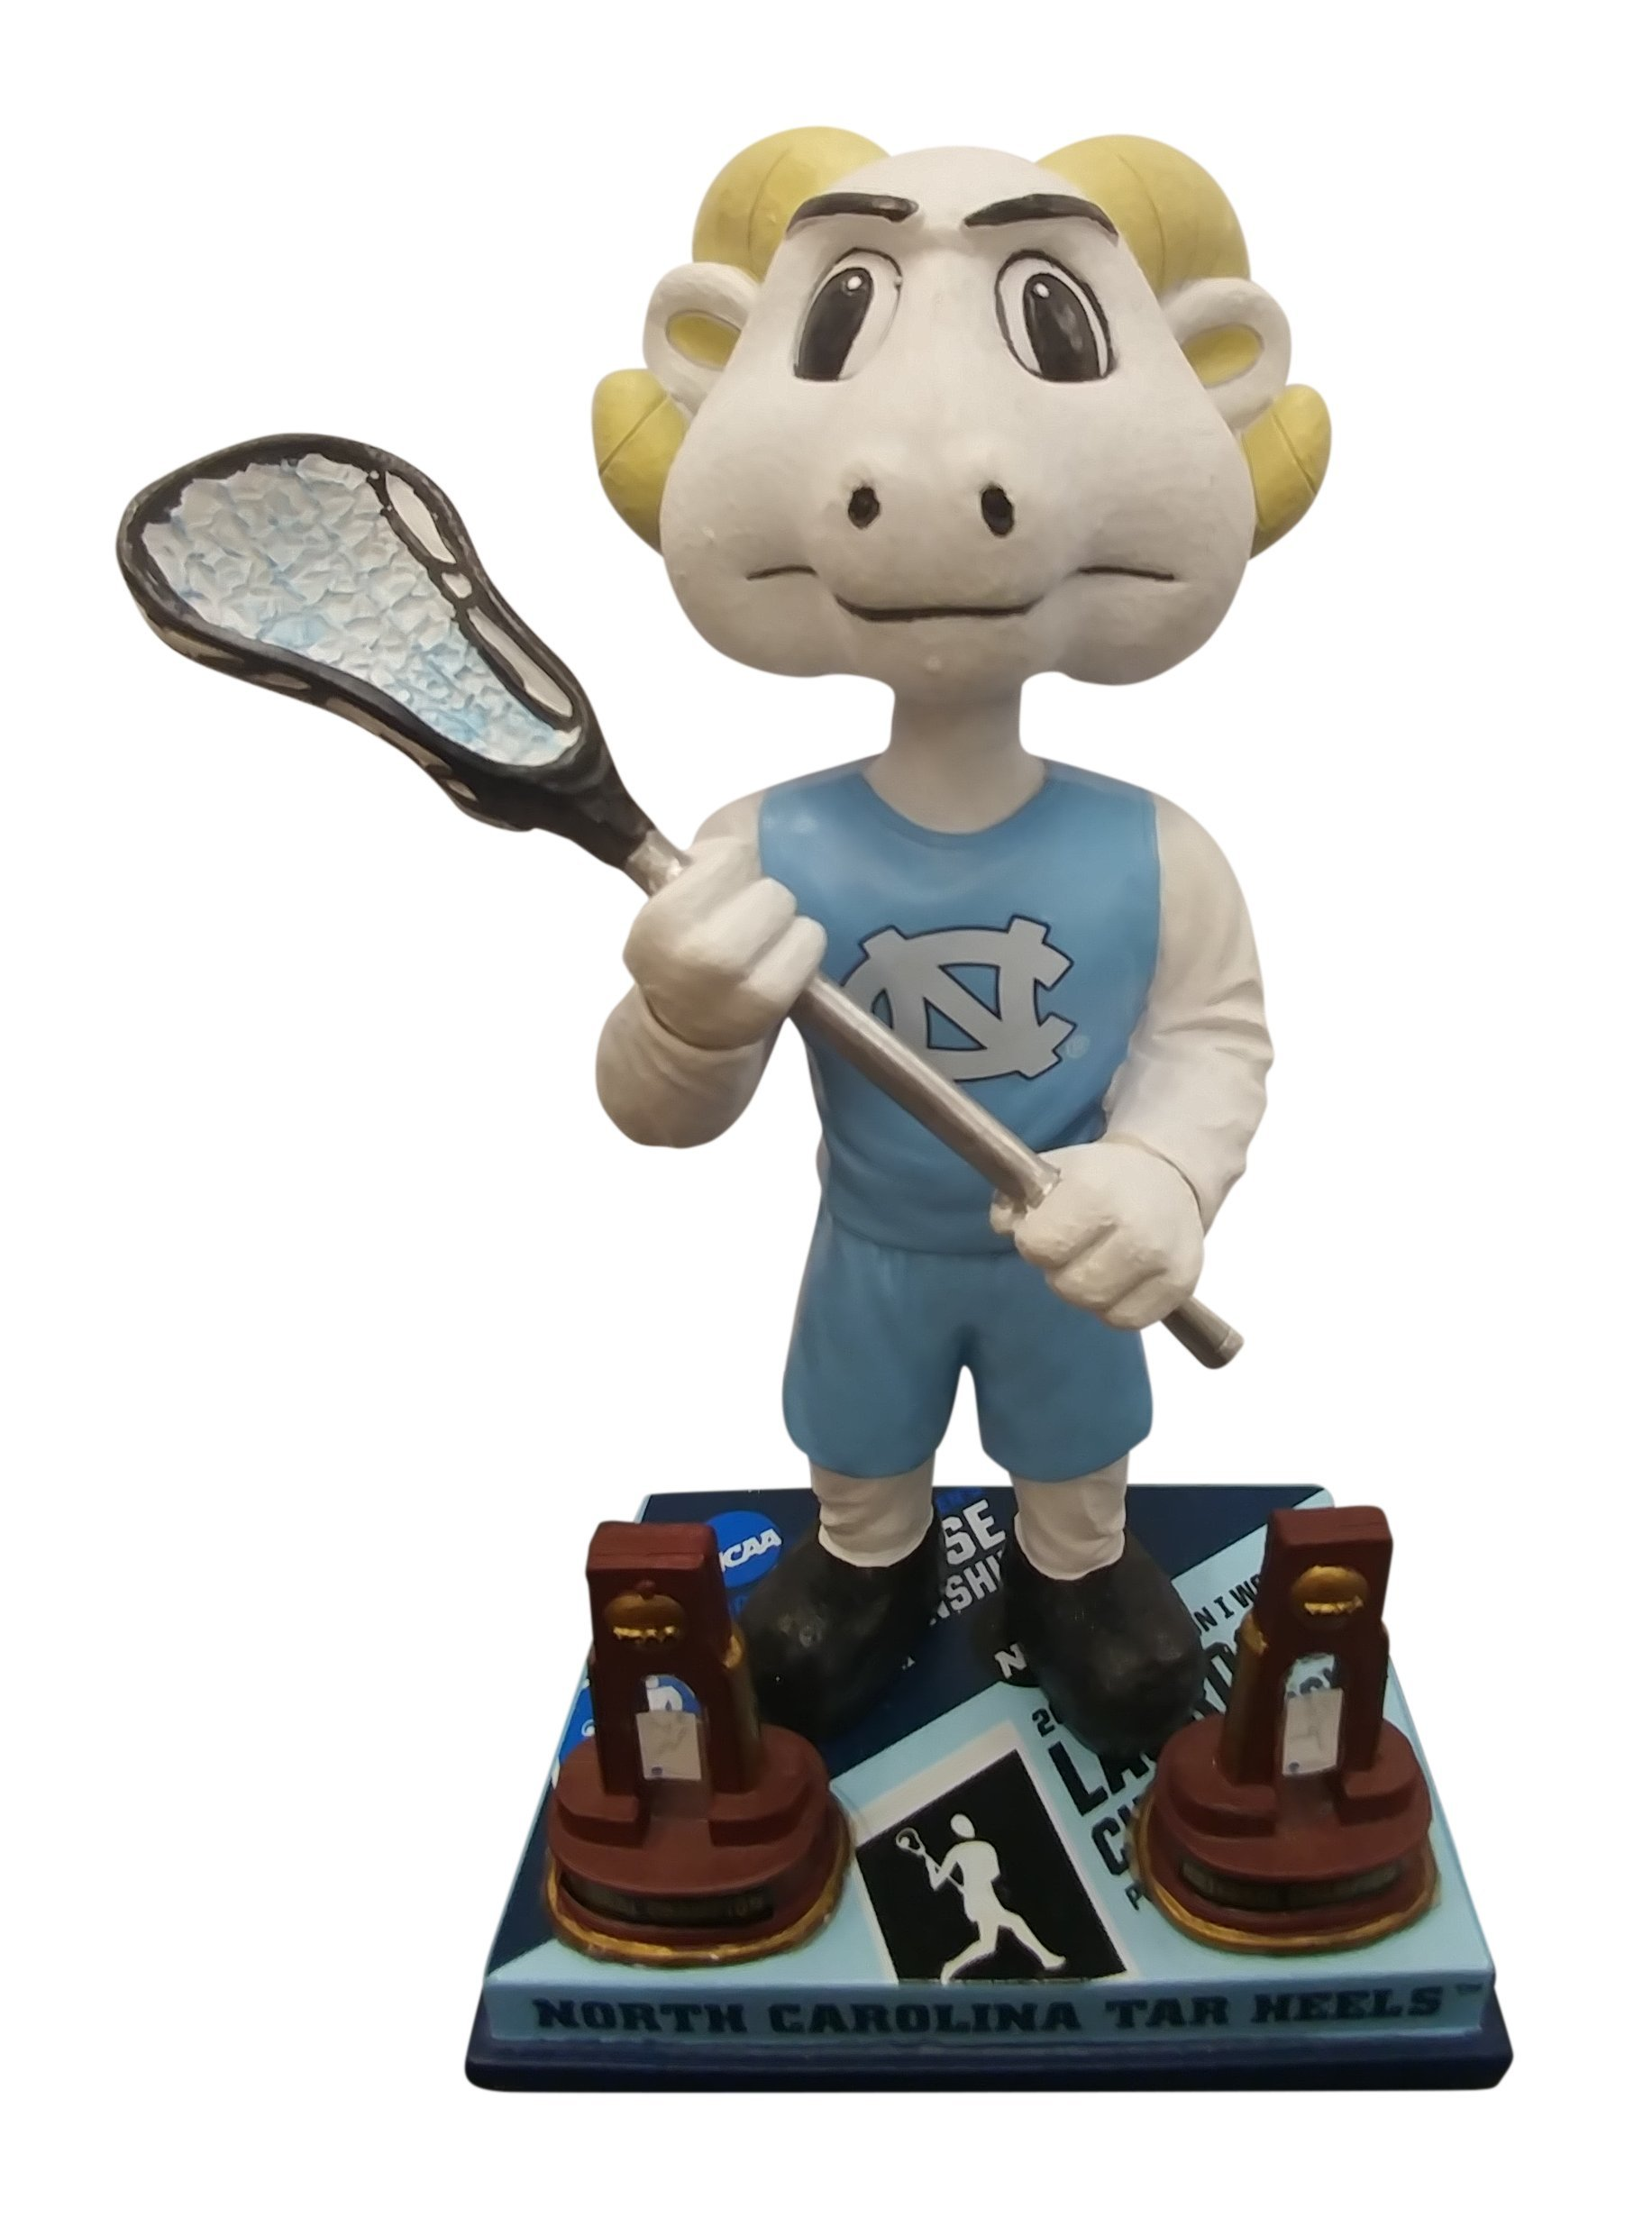 University of North Carolina UNC 2016 Men's and Women's Lacrosse National Championship Bobblehead HOF Exclusive - Numbered to 180